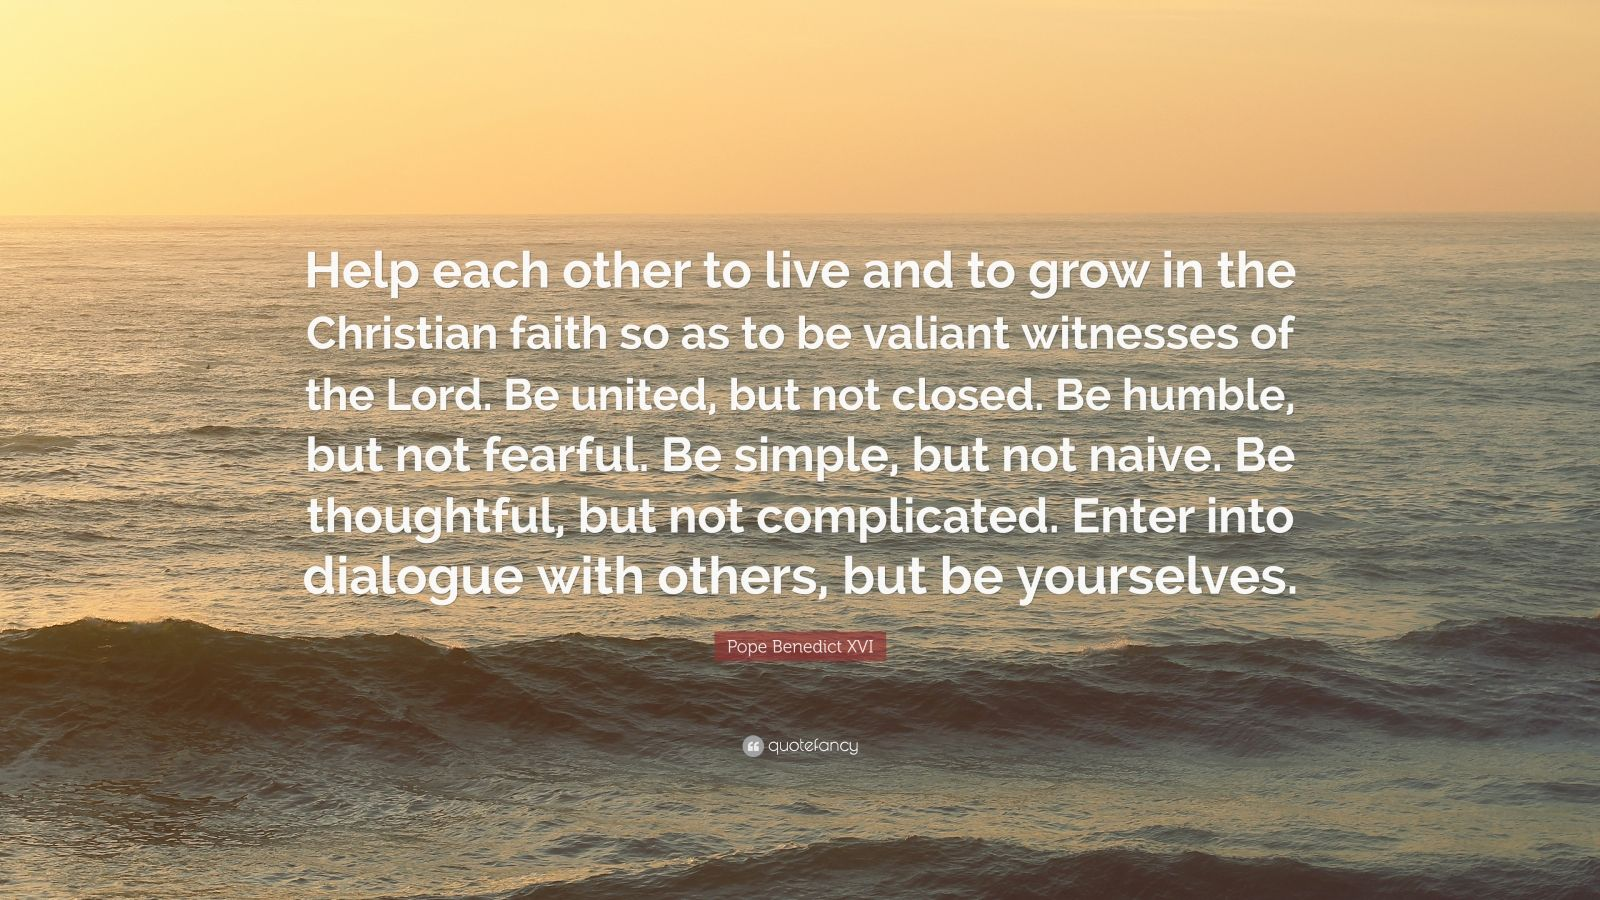 """Pope Benedict XVI Quote: """"Help each other to live and to grow in the Christian faith so as to be valiant witnesses of the Lord. Be united, but not closed. Be humble, but not fearful. Be simple, but not naive. Be thoughtful, but not complicated. Enter into dialogue with others, but be yourselves."""""""